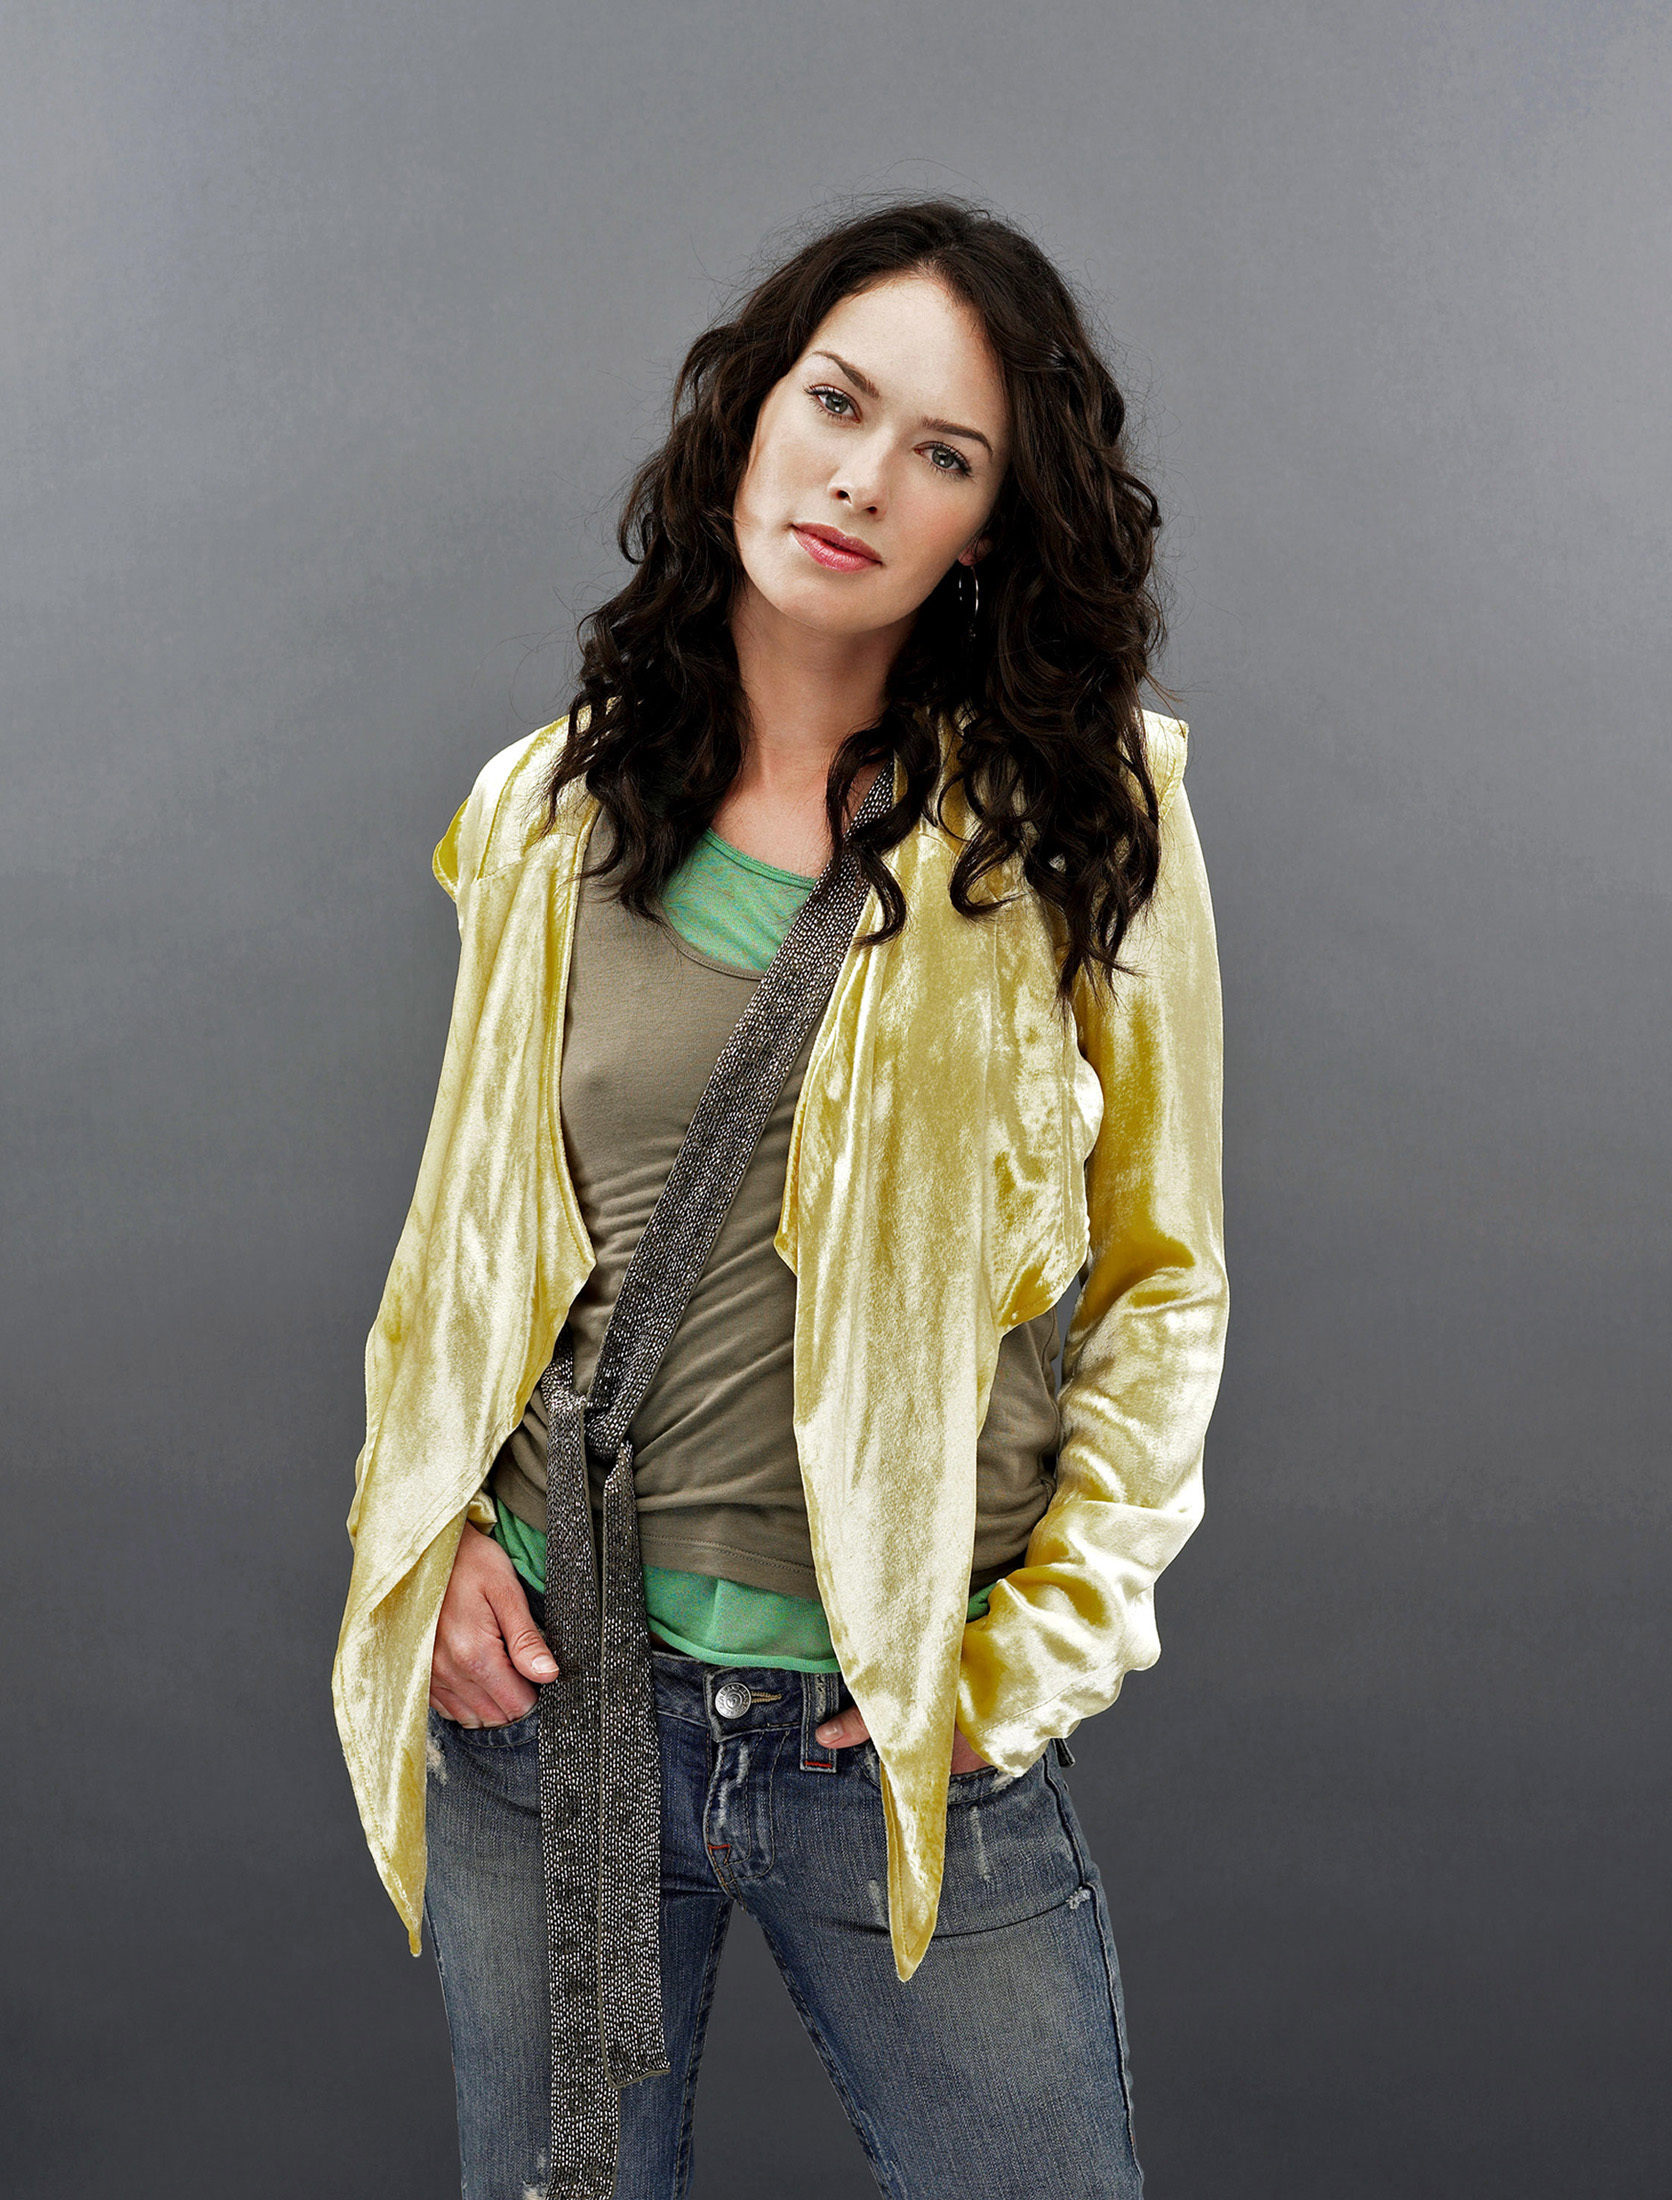 lena headey white collar